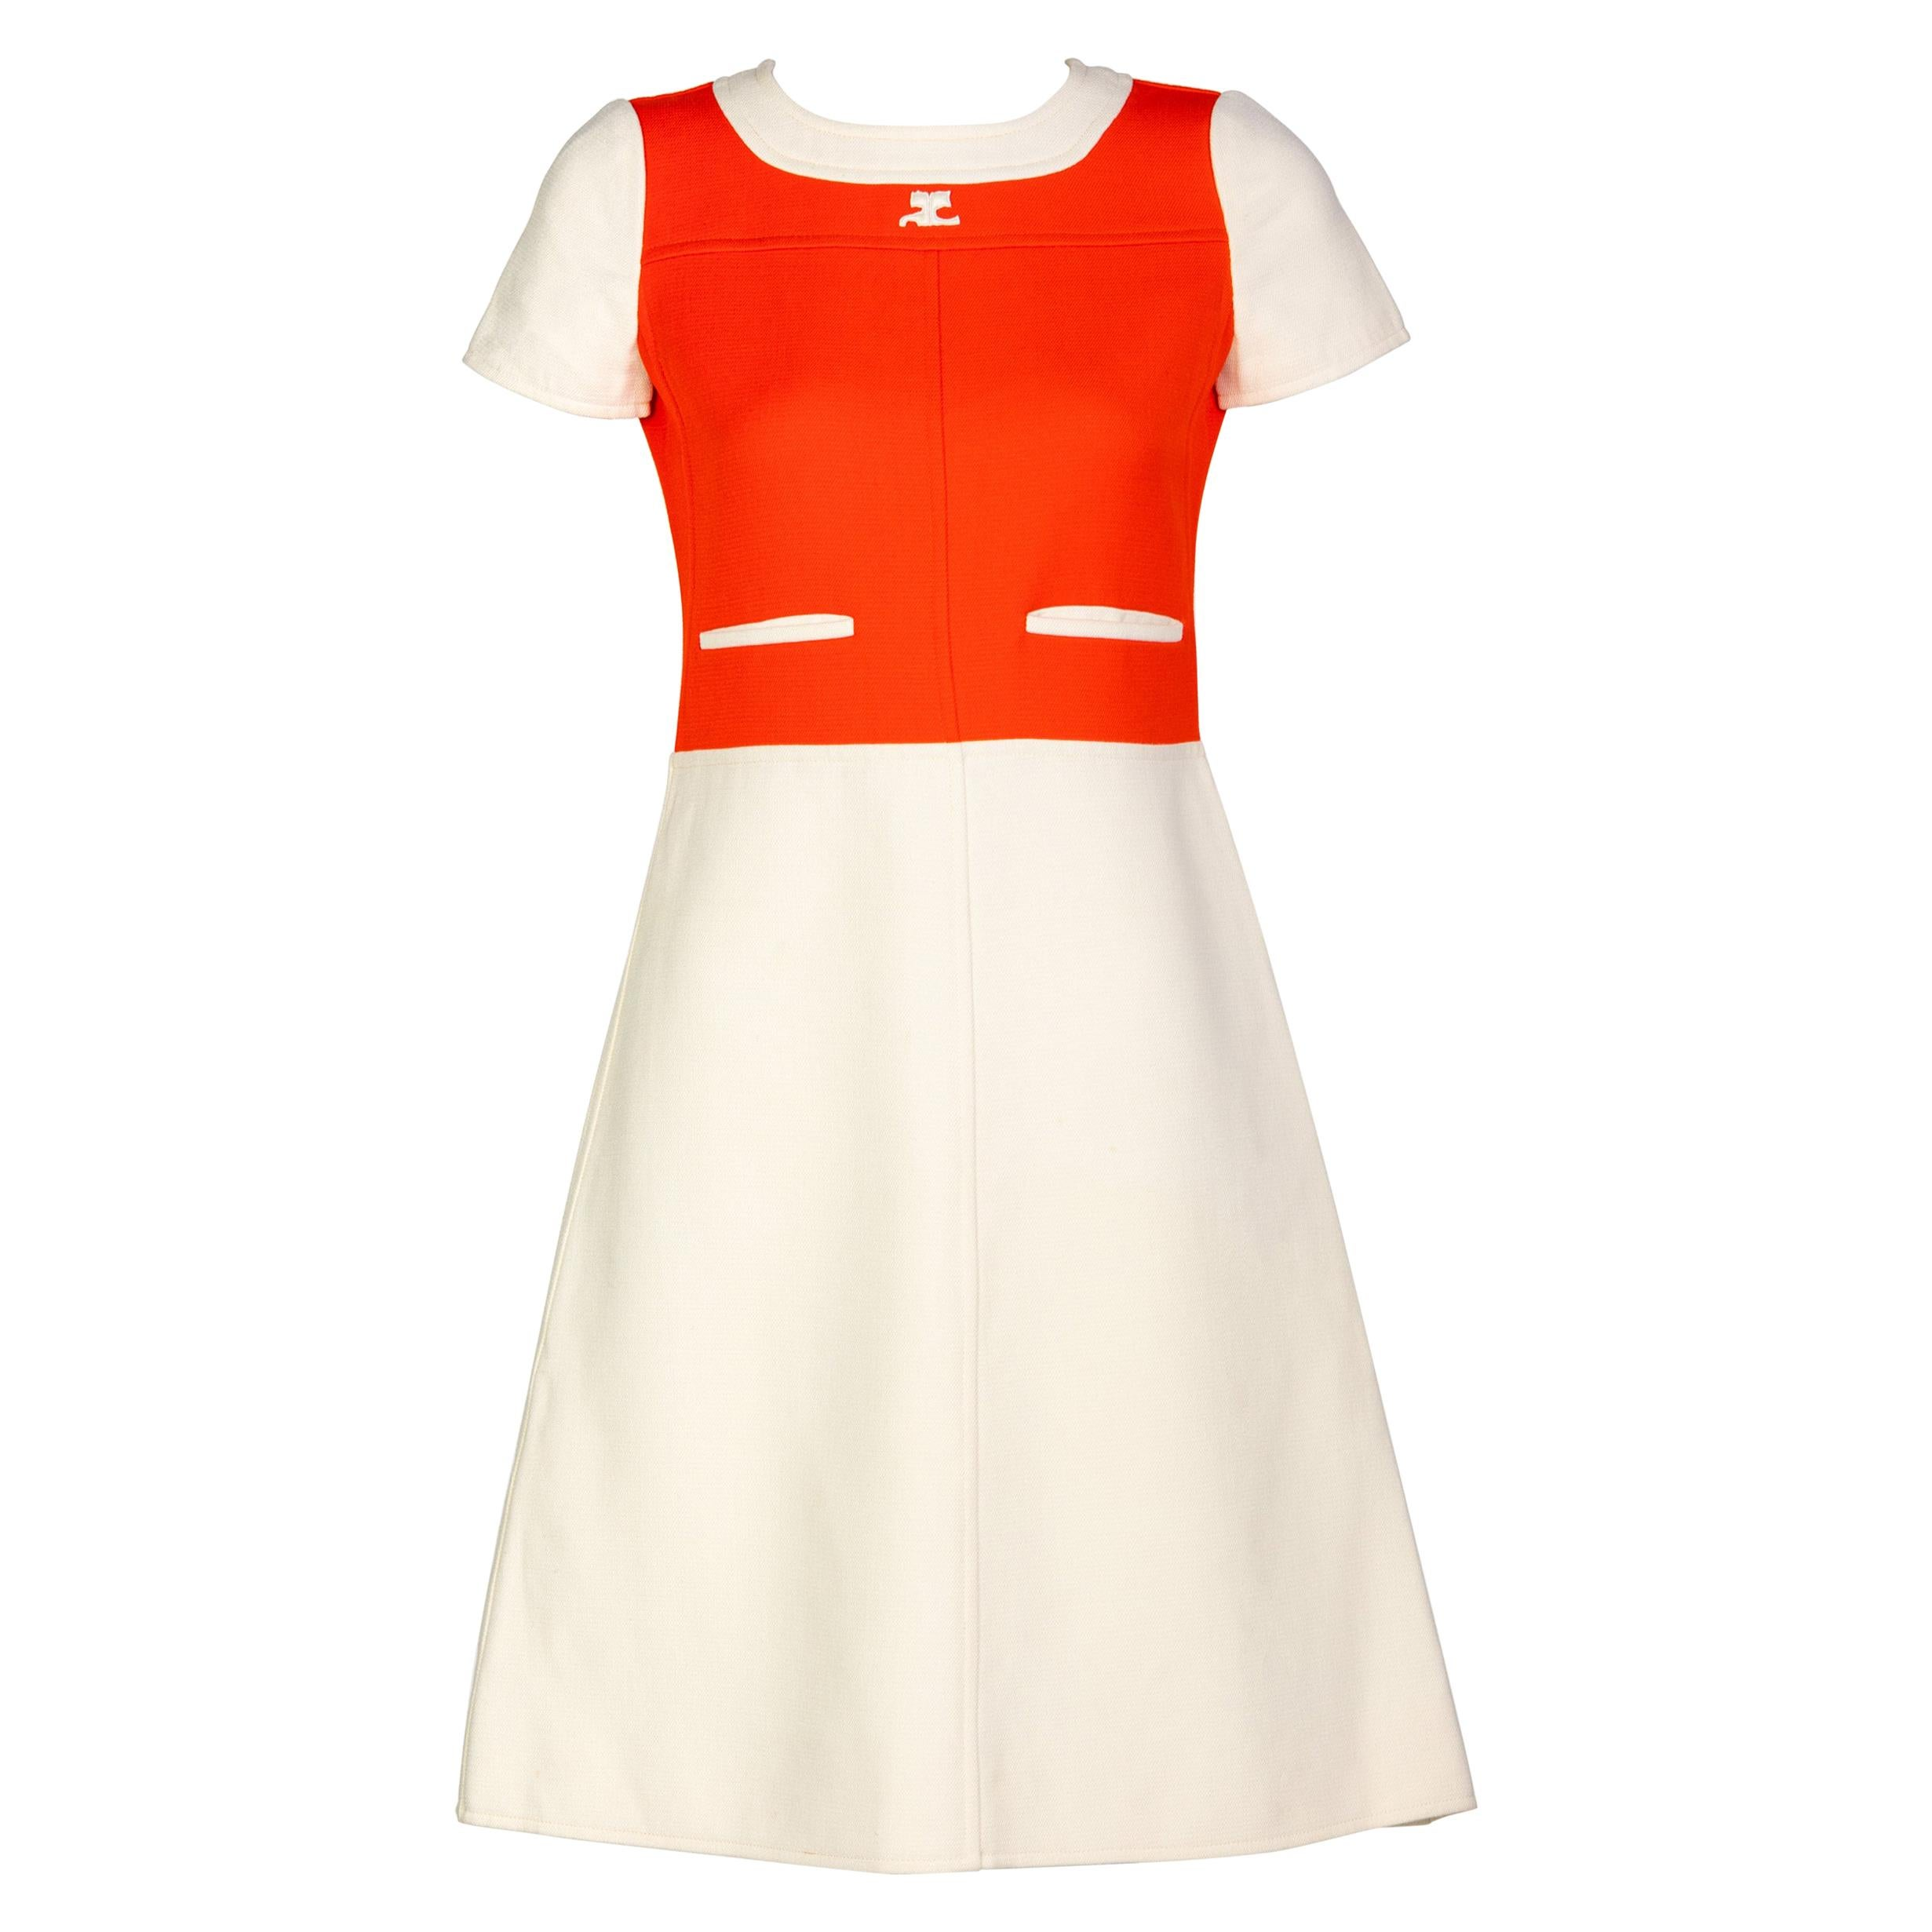 Courreges Numbered Couture Creme Orange Mod a Line Dress, 1960s